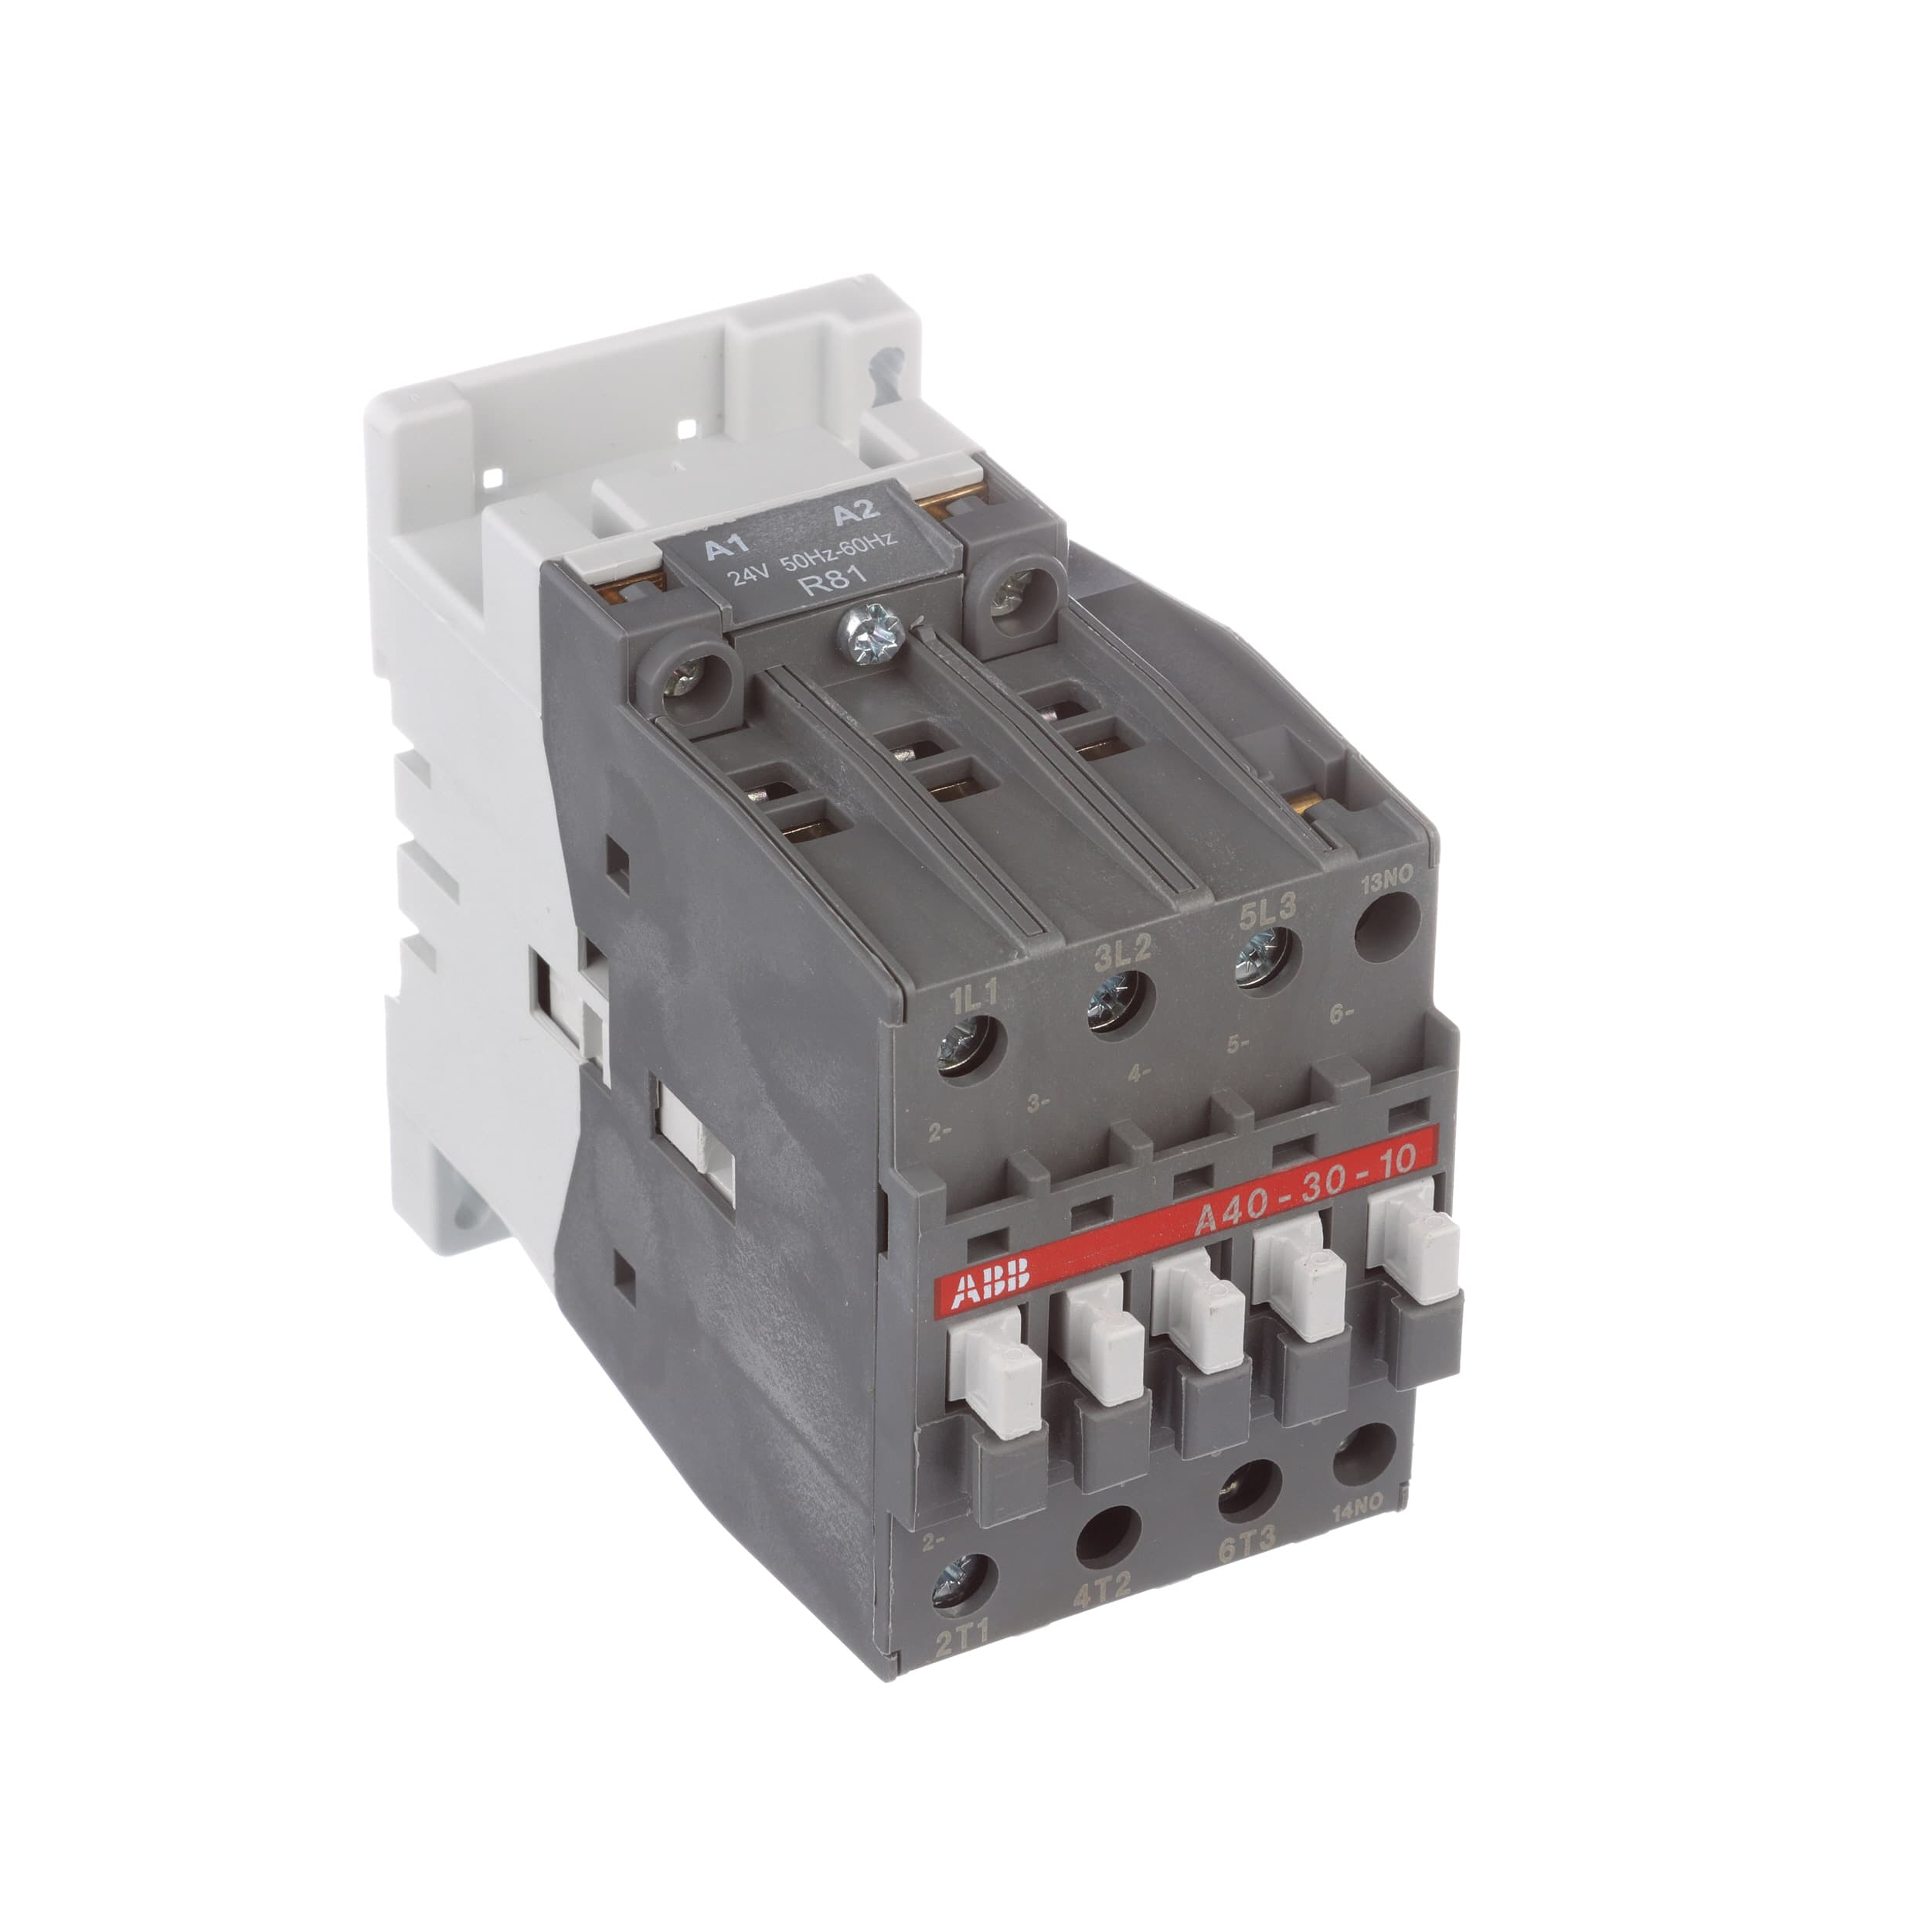 Abb A30 30 10 81 3 Pole Contactor 50 A Hp 550 To600v Solid State Relay Wiring Diagram Ac 75 240v Dc 24v Coil Allied Electronics Automation